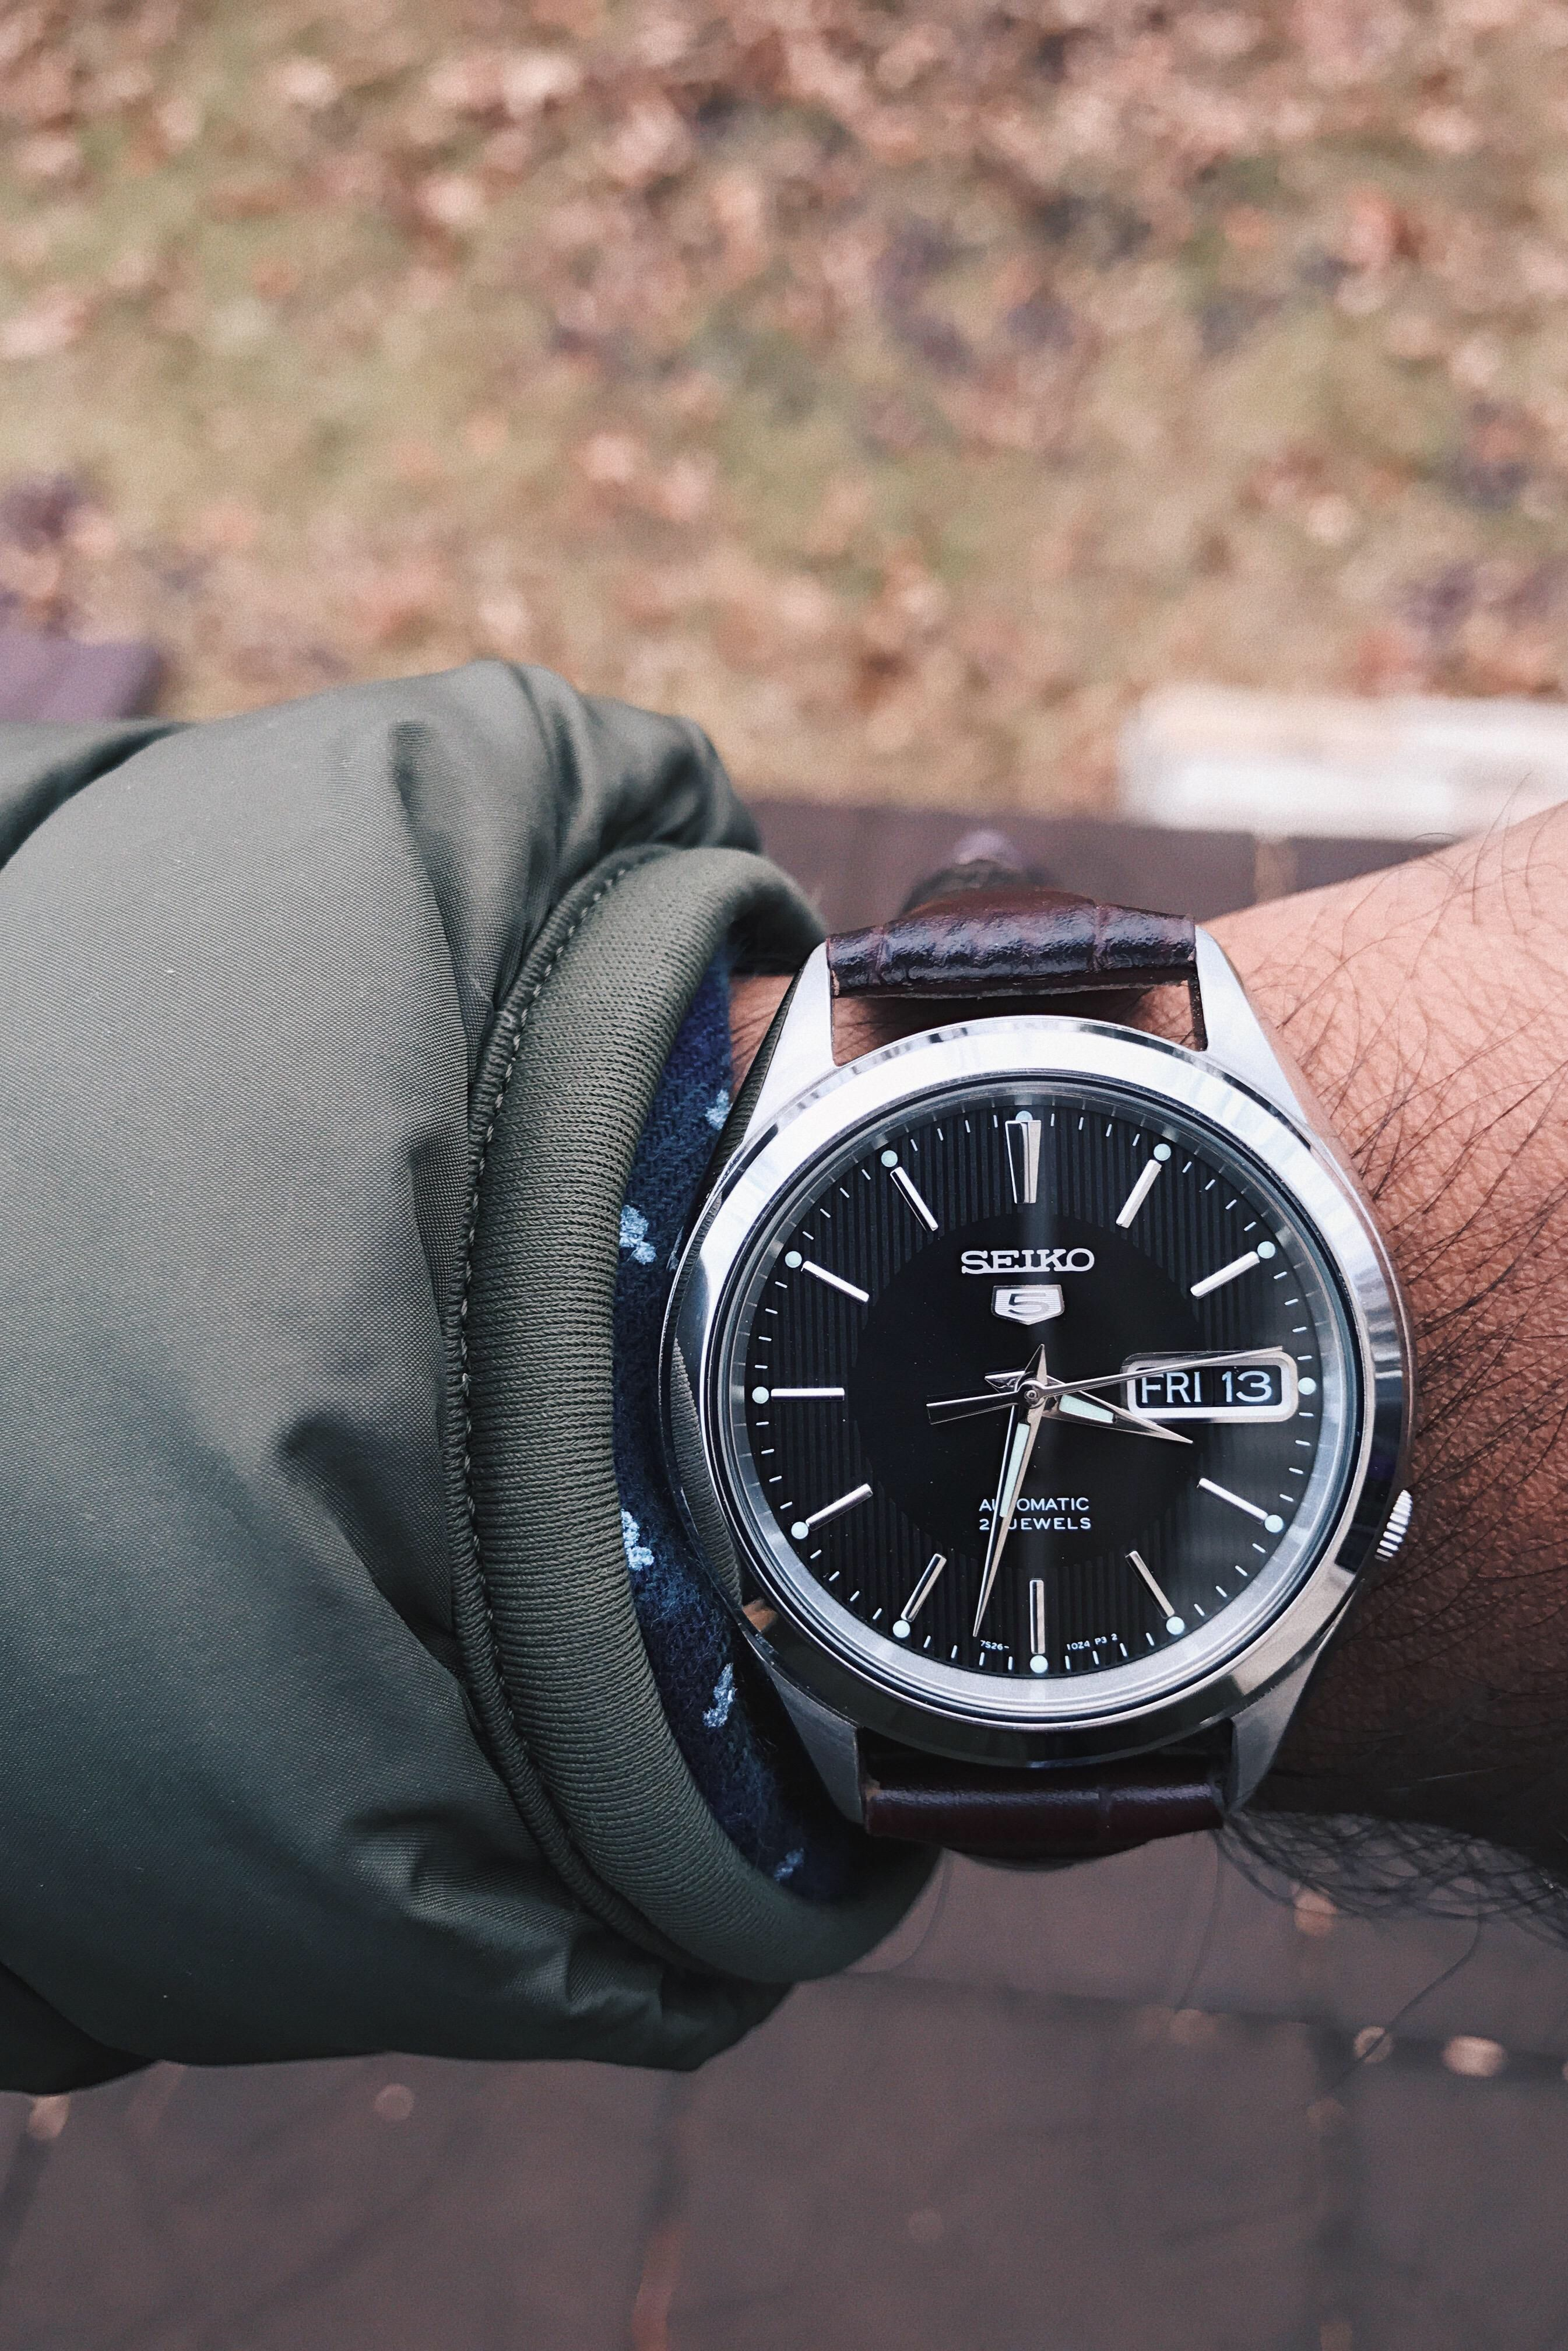 Seiko First Analog Watch For Upcoming Job Interviews Snkl23